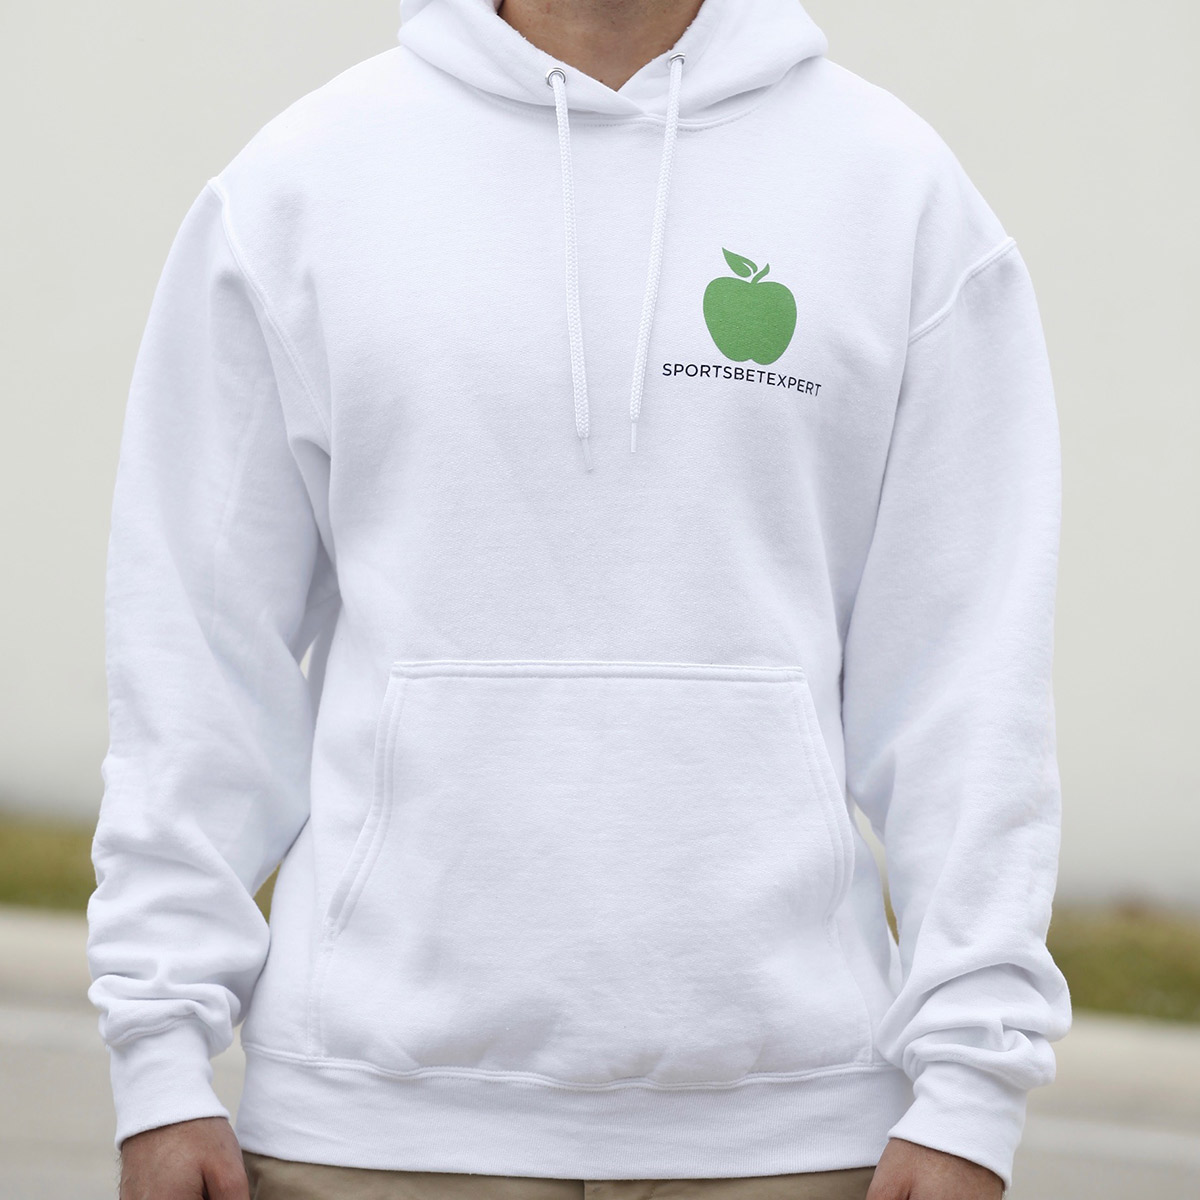 You got to have brains but you got to have balls too - white hooded sweatshirt - front